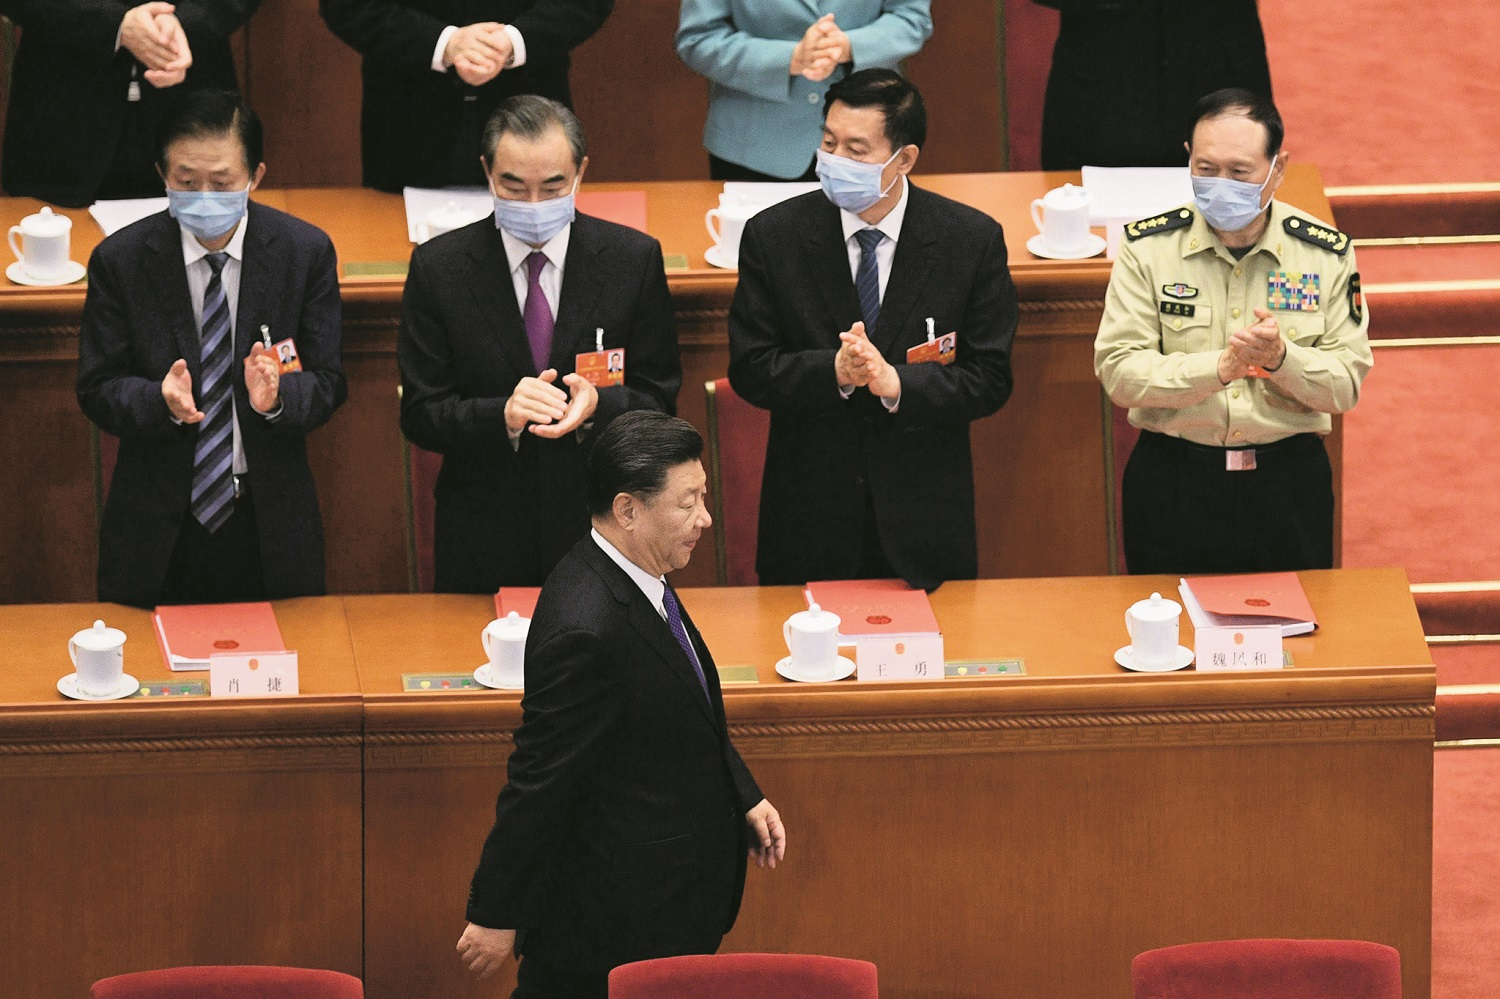 TOPSHOT - Chinese President Xi Jinping is applauded by, from left, State Councilor Xiao Jie, Foreign Minister Wang YiState Councilor Wang Yong, and Defence Minister Wei Fenghe, as he arrives for the closing session of the National People's Congress at the Great Hall of the People in Beijing on May 28, 2020. - China's rubber-stamp parliament endorsed plans May 28 to impose a national security law on Hong Kong that critics say will destroy the city's autonomy. (Photo by NICOLAS ASFOURI / AFP)